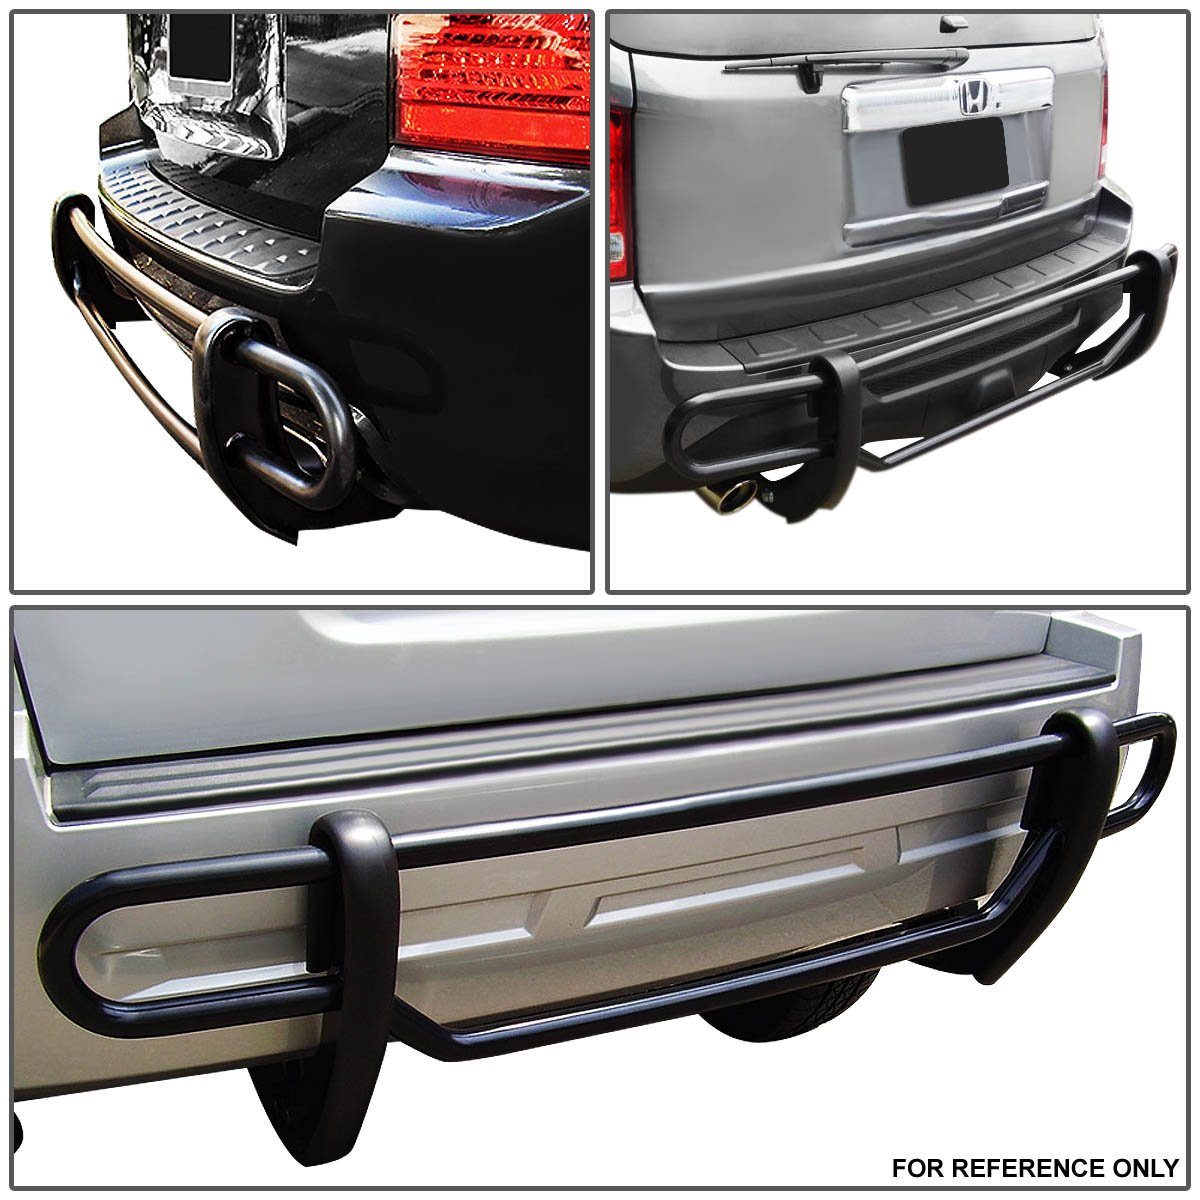 Amazon.com: For Honda Odyssey Stainless Steel Double Bar Rear Bumper  Protector Guard (Black): Automotive